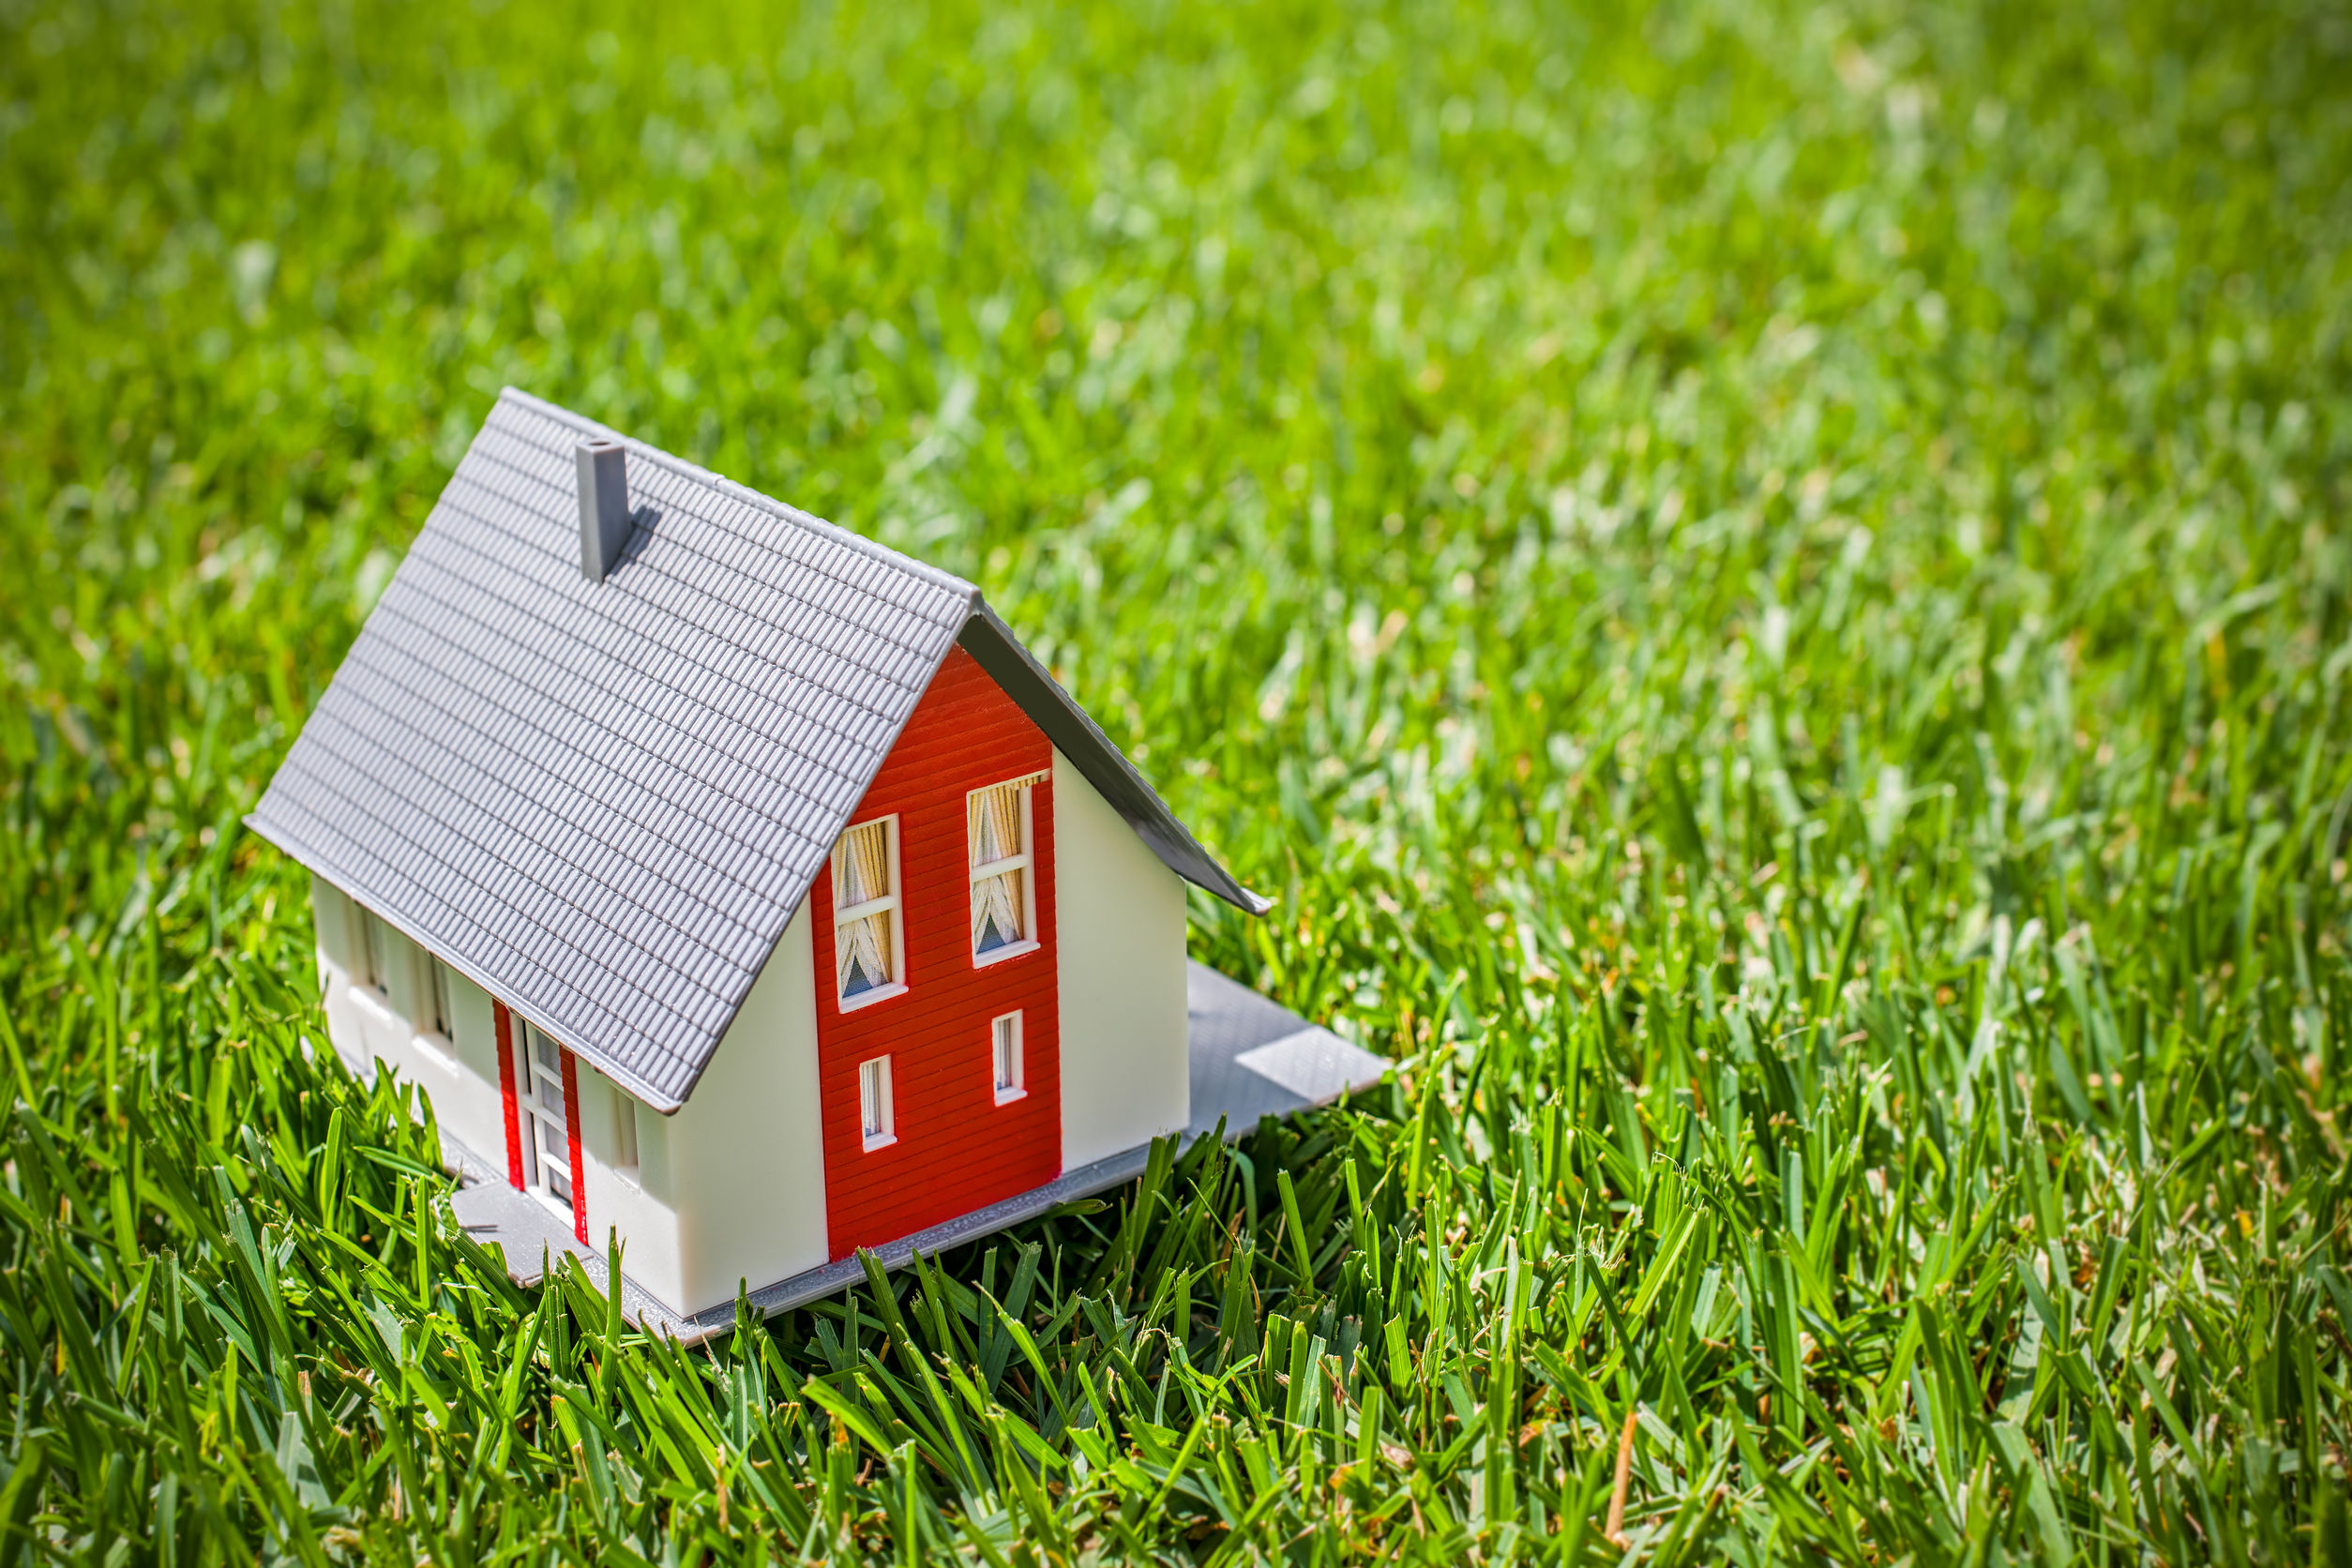 29766698 - house in green grass. real estate concept